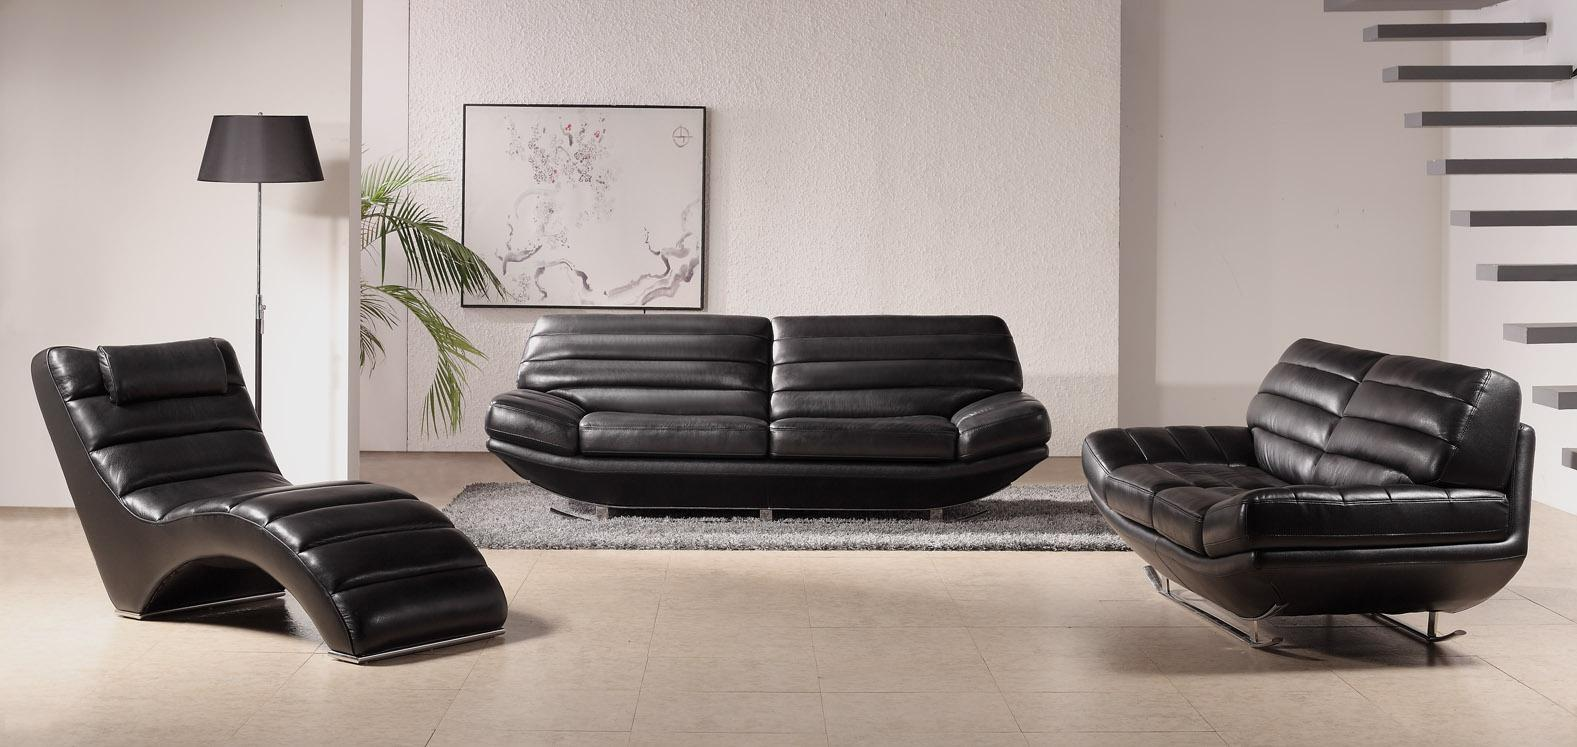 Know about types of couches and sofas my decorative for Contemporary living room sets